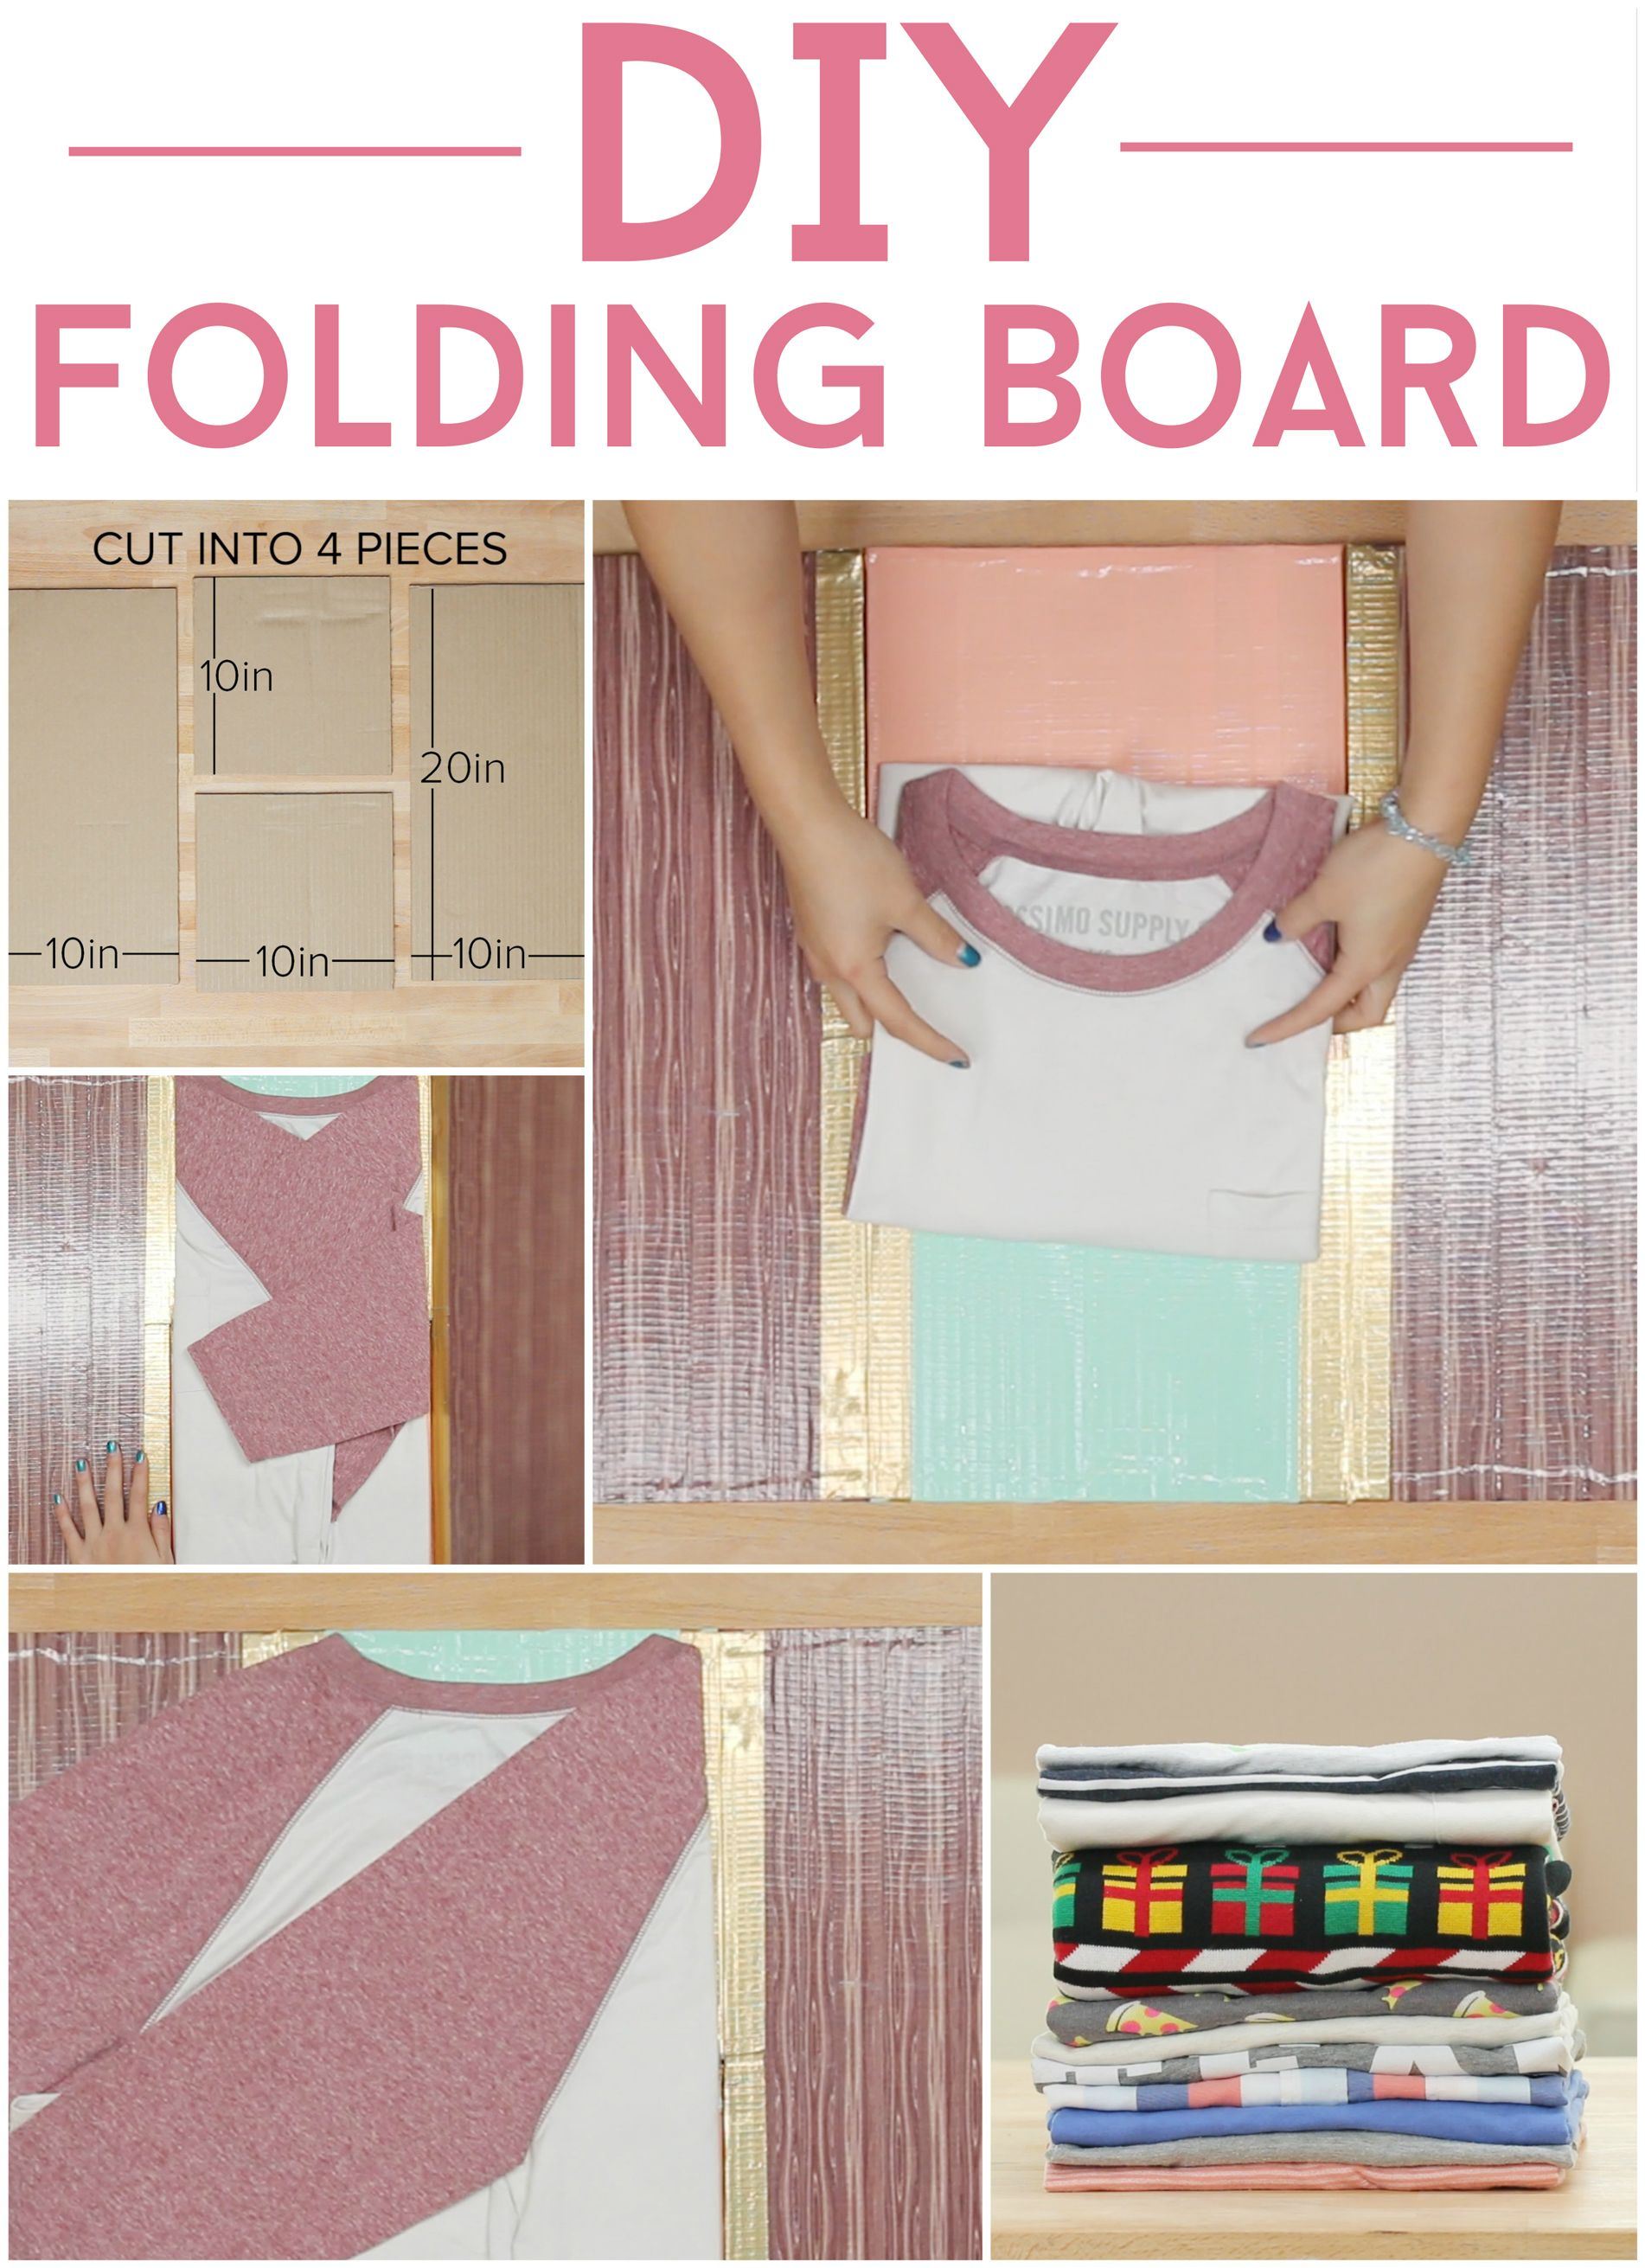 Fold Your Clothes Perfectly Every Time With The Diy Folding Board